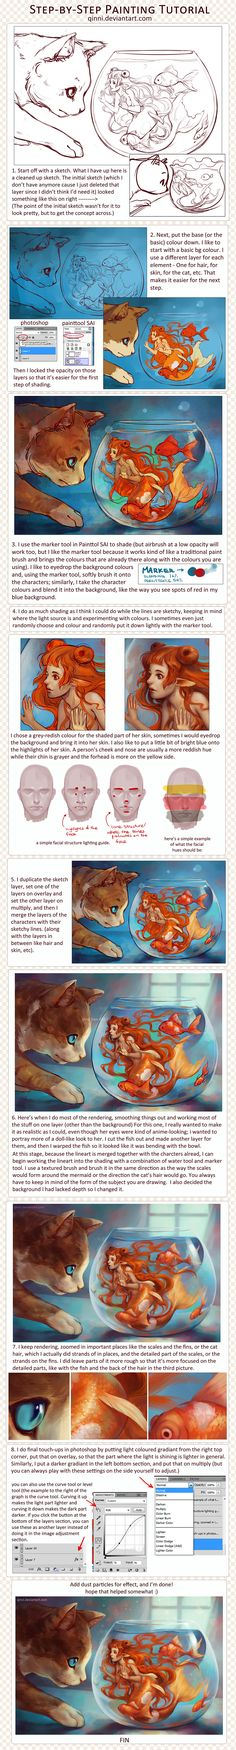 Step-by-Step Digital Painting Tutorial by Qinni.deviantart.com on @deviantART